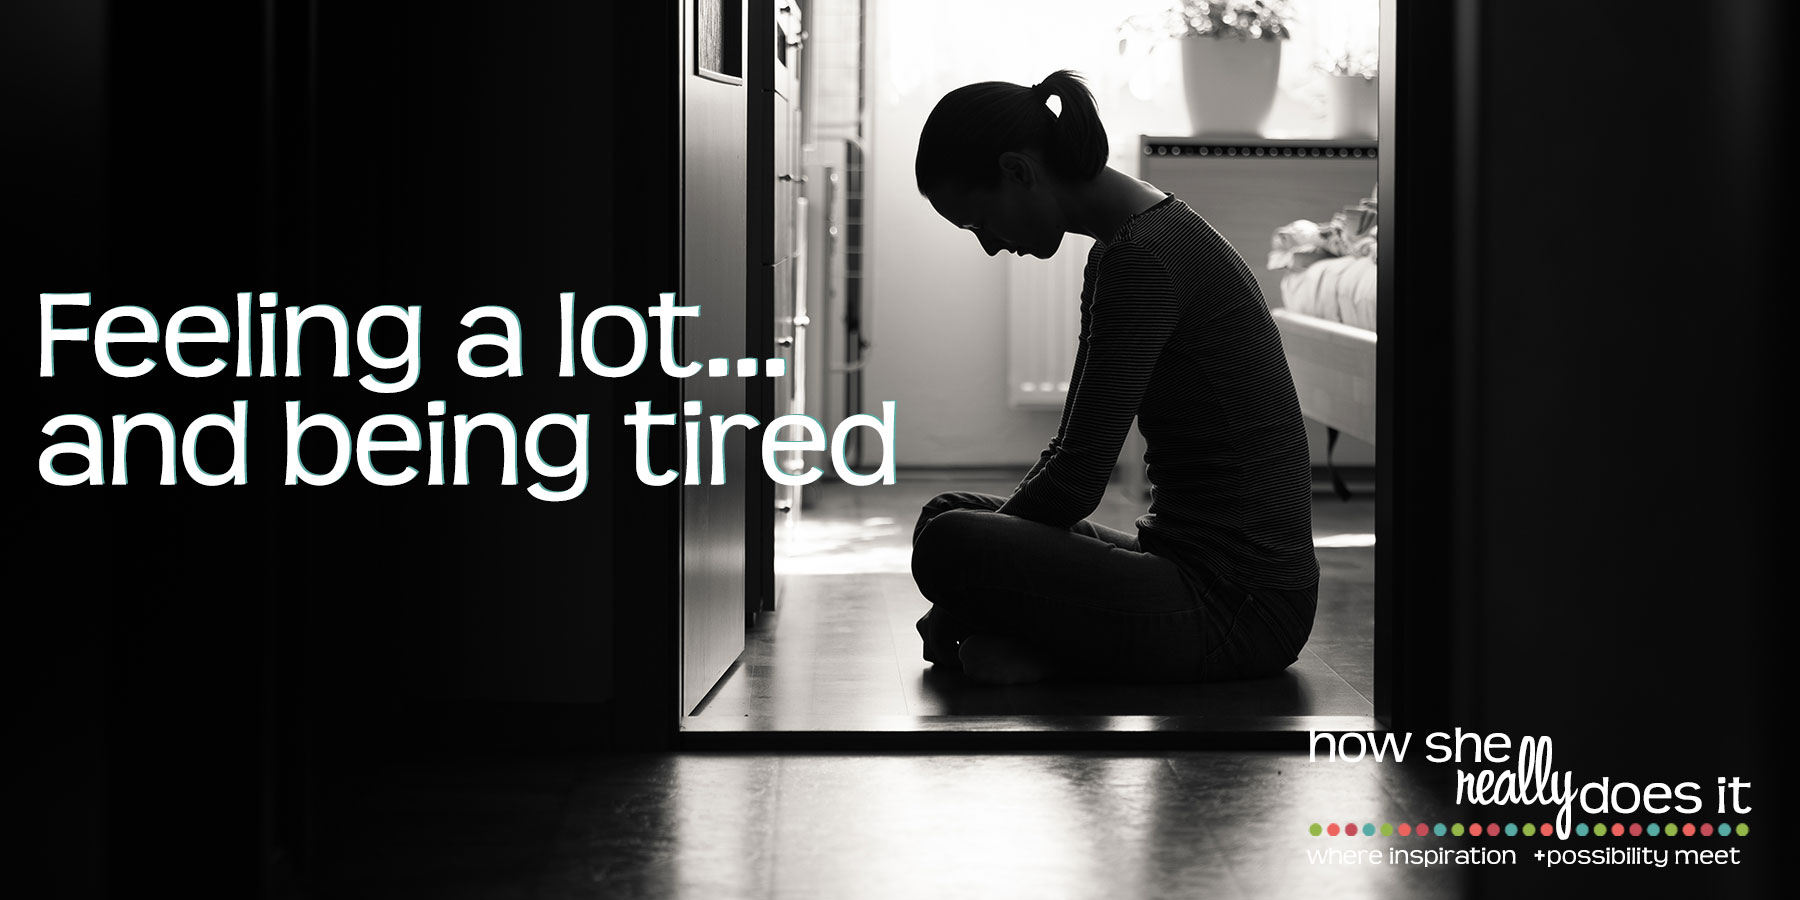 Feeling a lot... and being tired